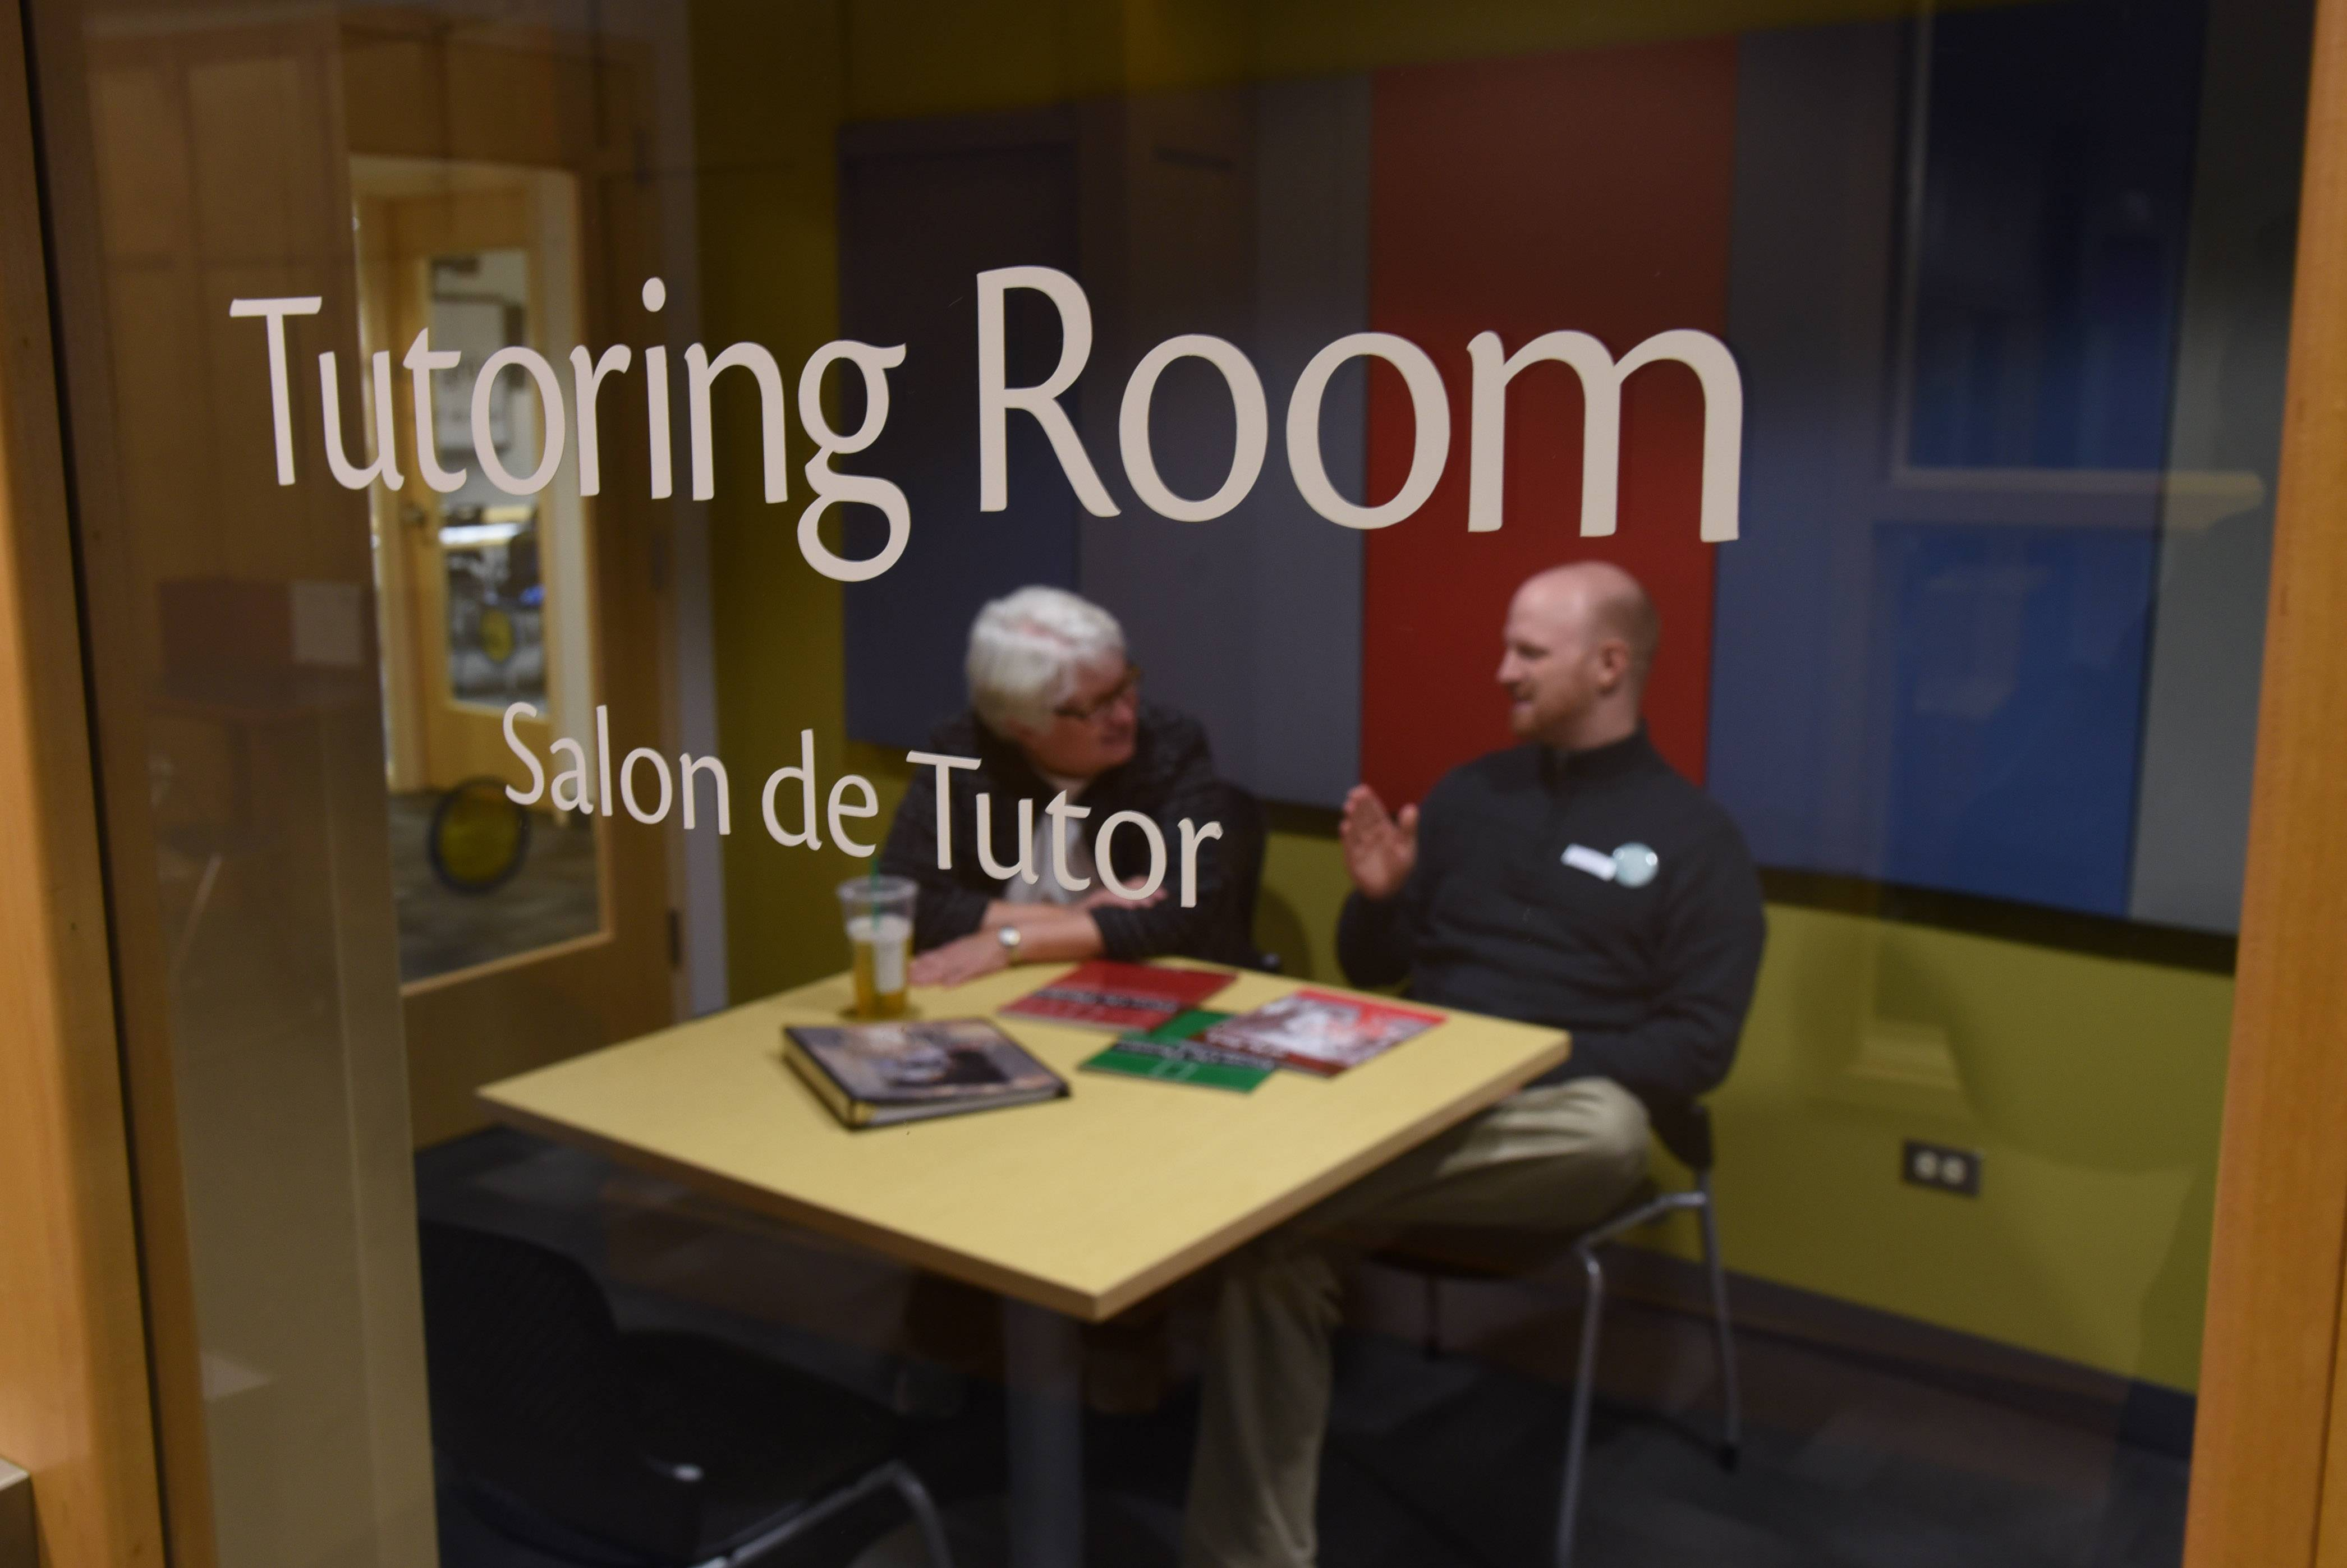 One of the tutoring rooms in the lower level of the Waukegan Public Library.